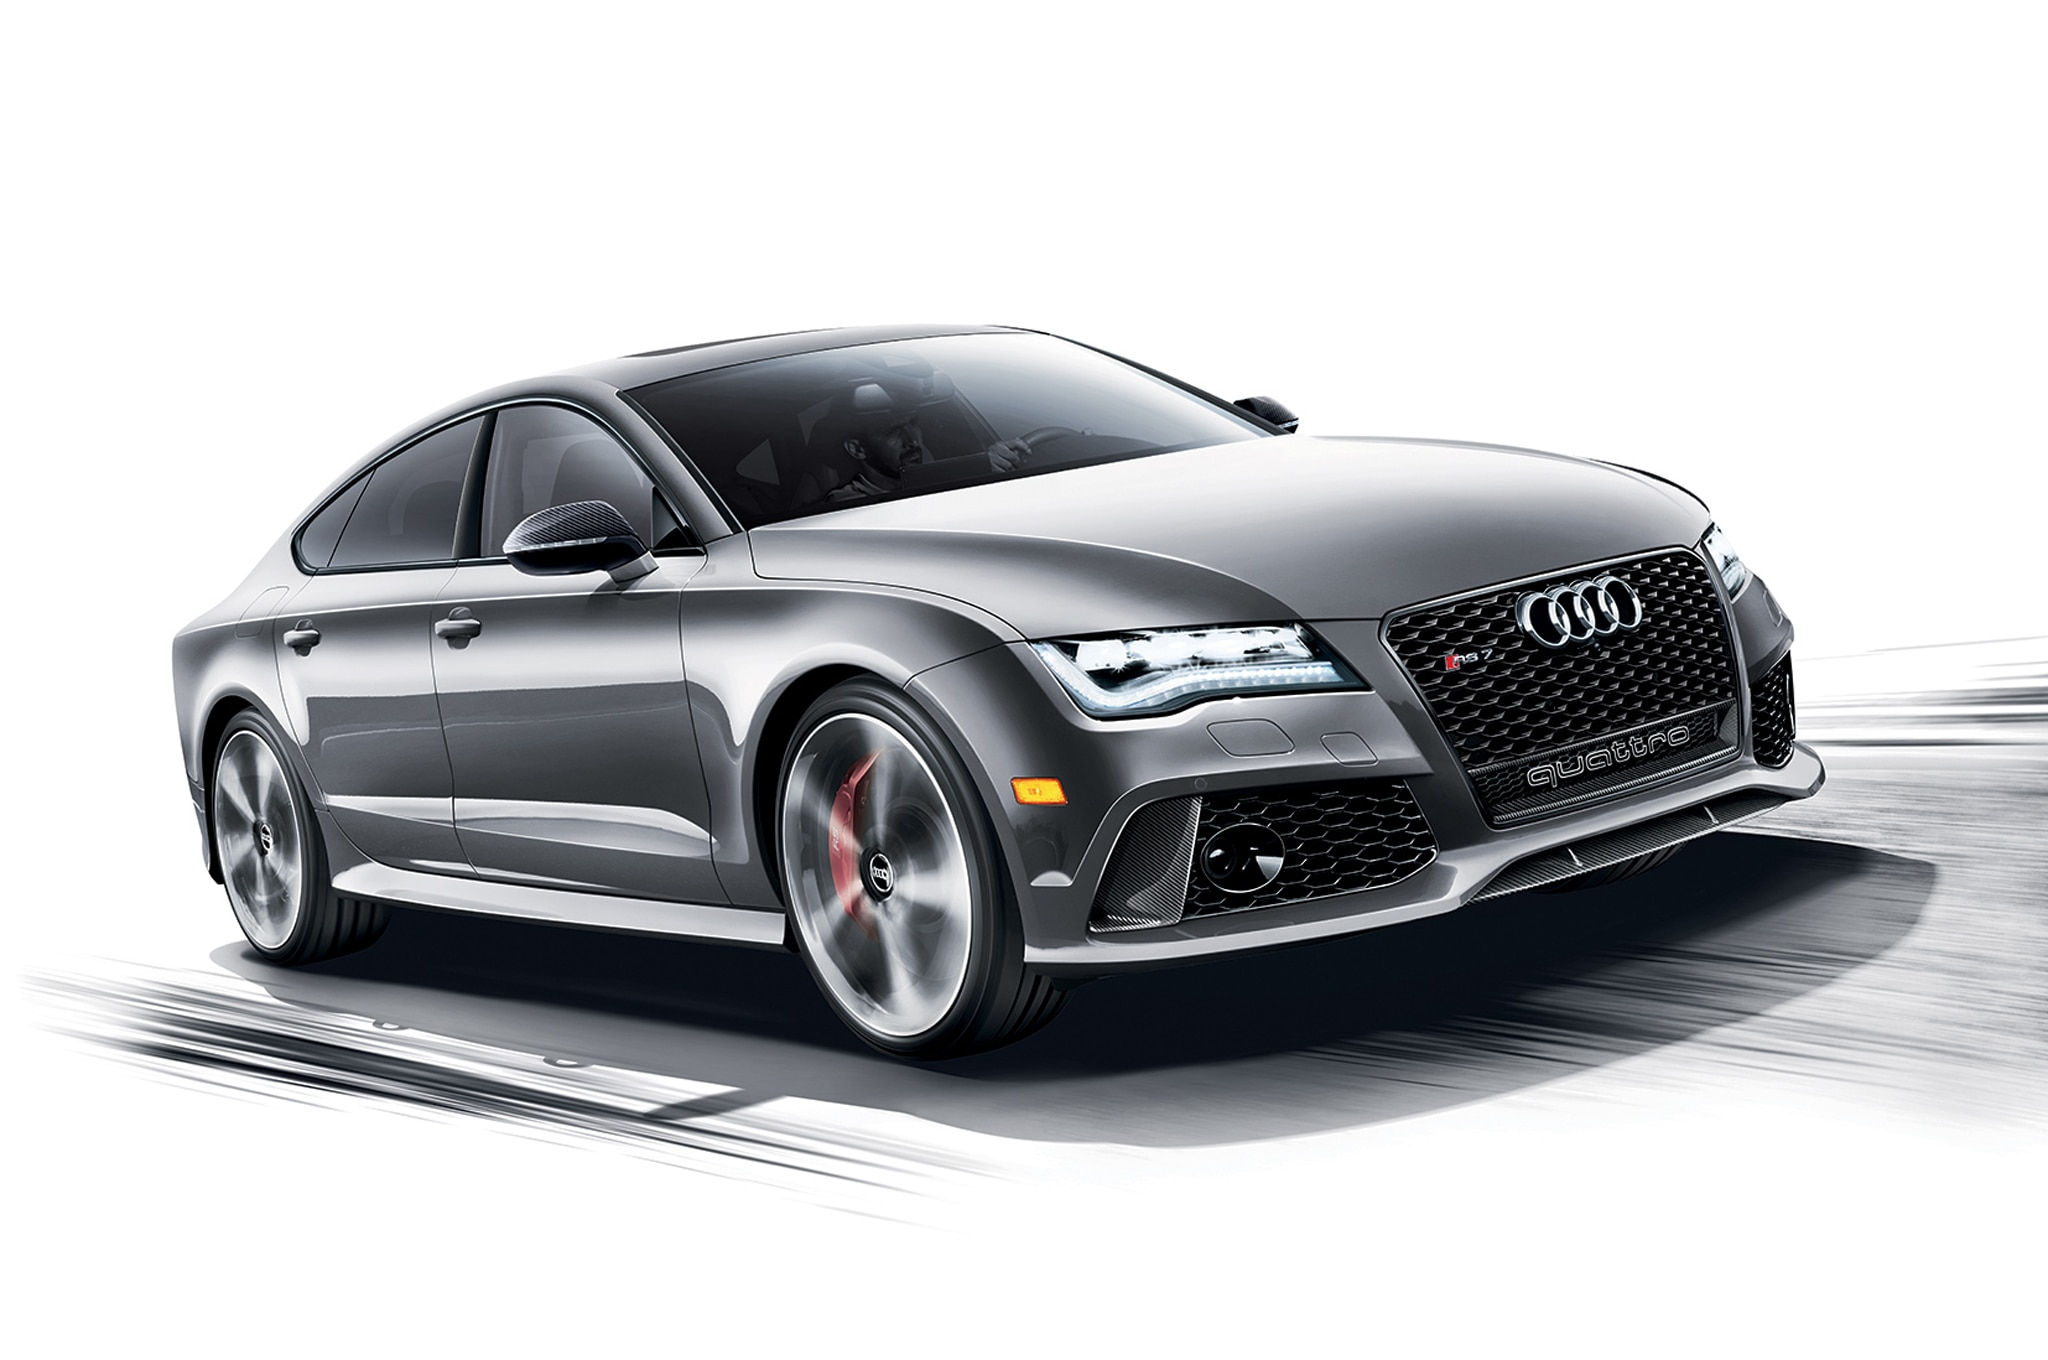 2014 Audi RS 7 Dynamic Edition Sketch1